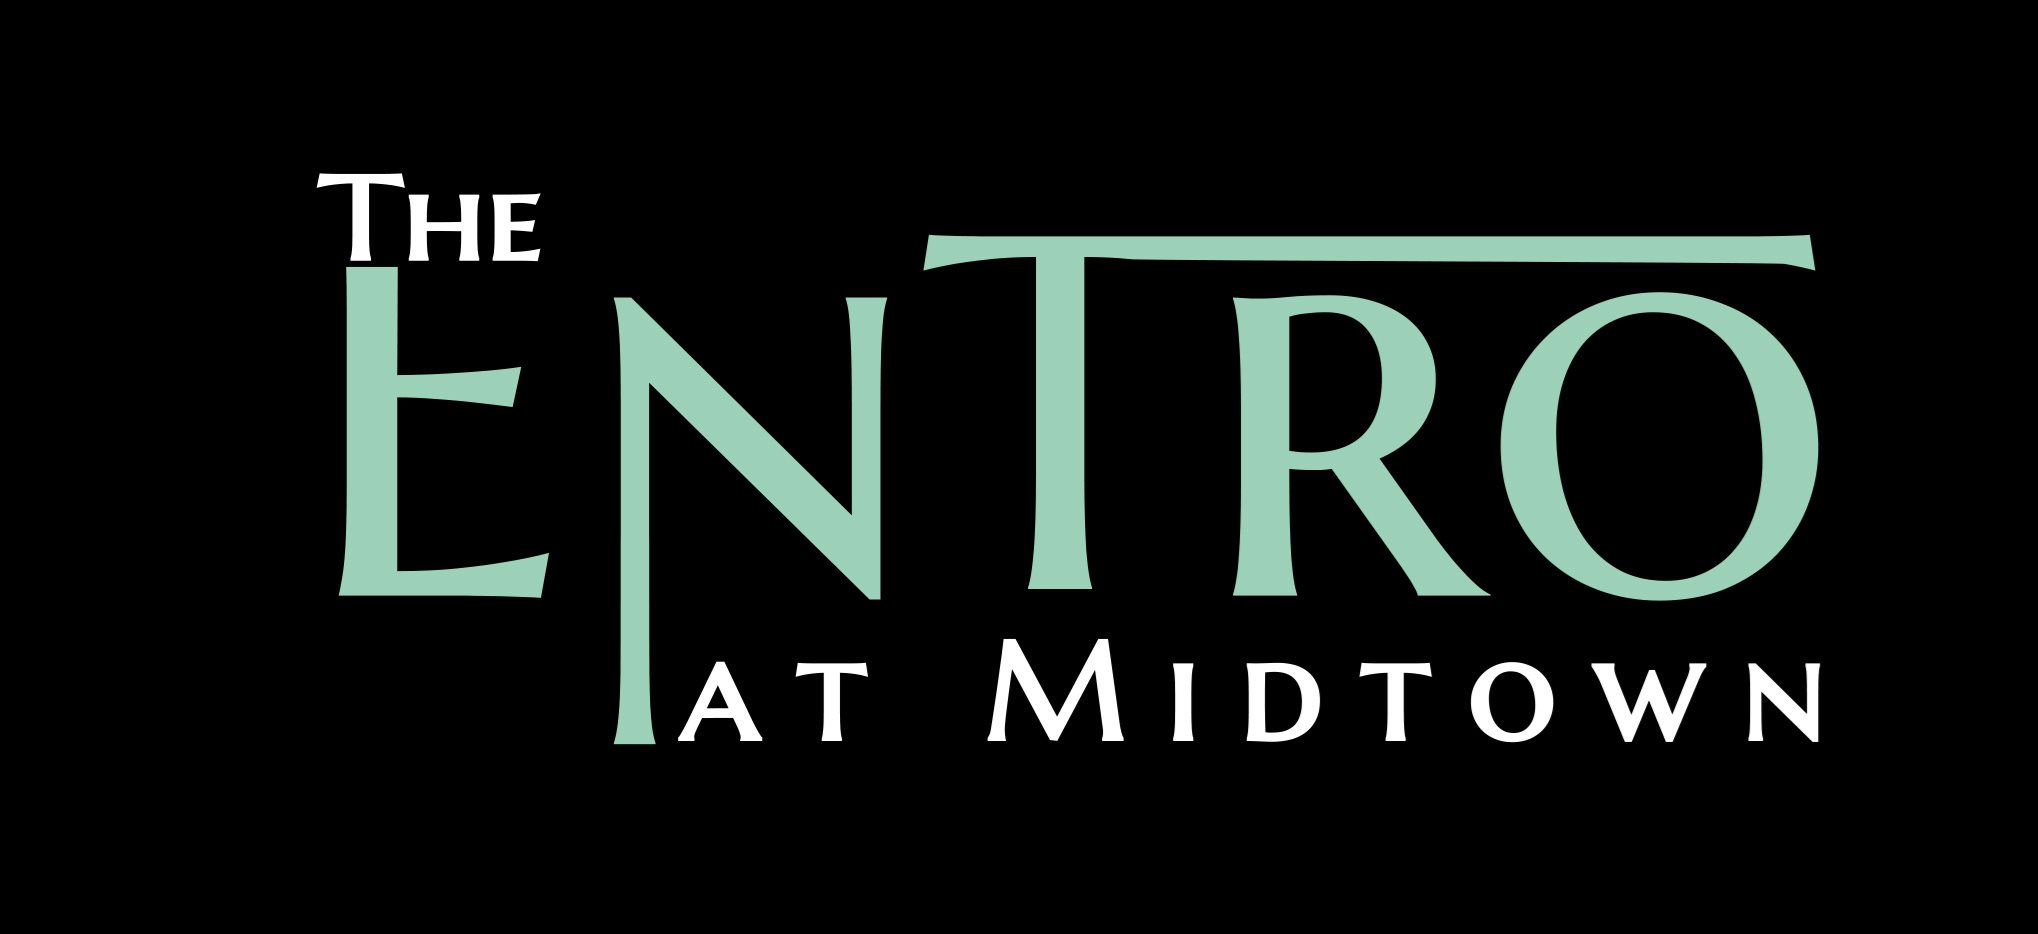 The Entro Property Logo 15